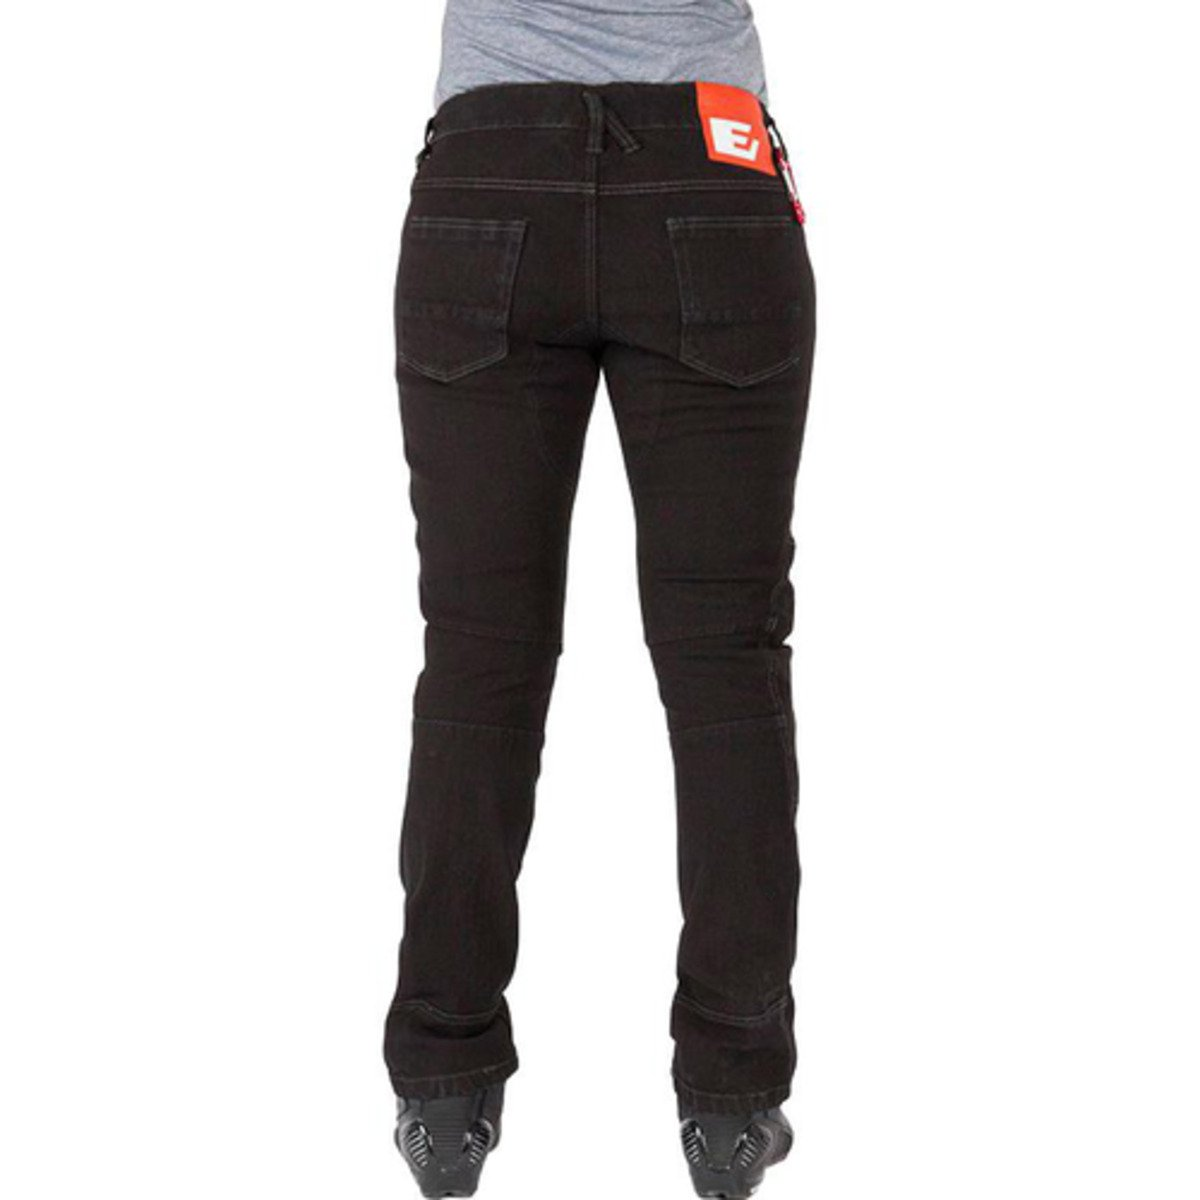 Bild 2 von Strong Exclusivite Damen Jeans